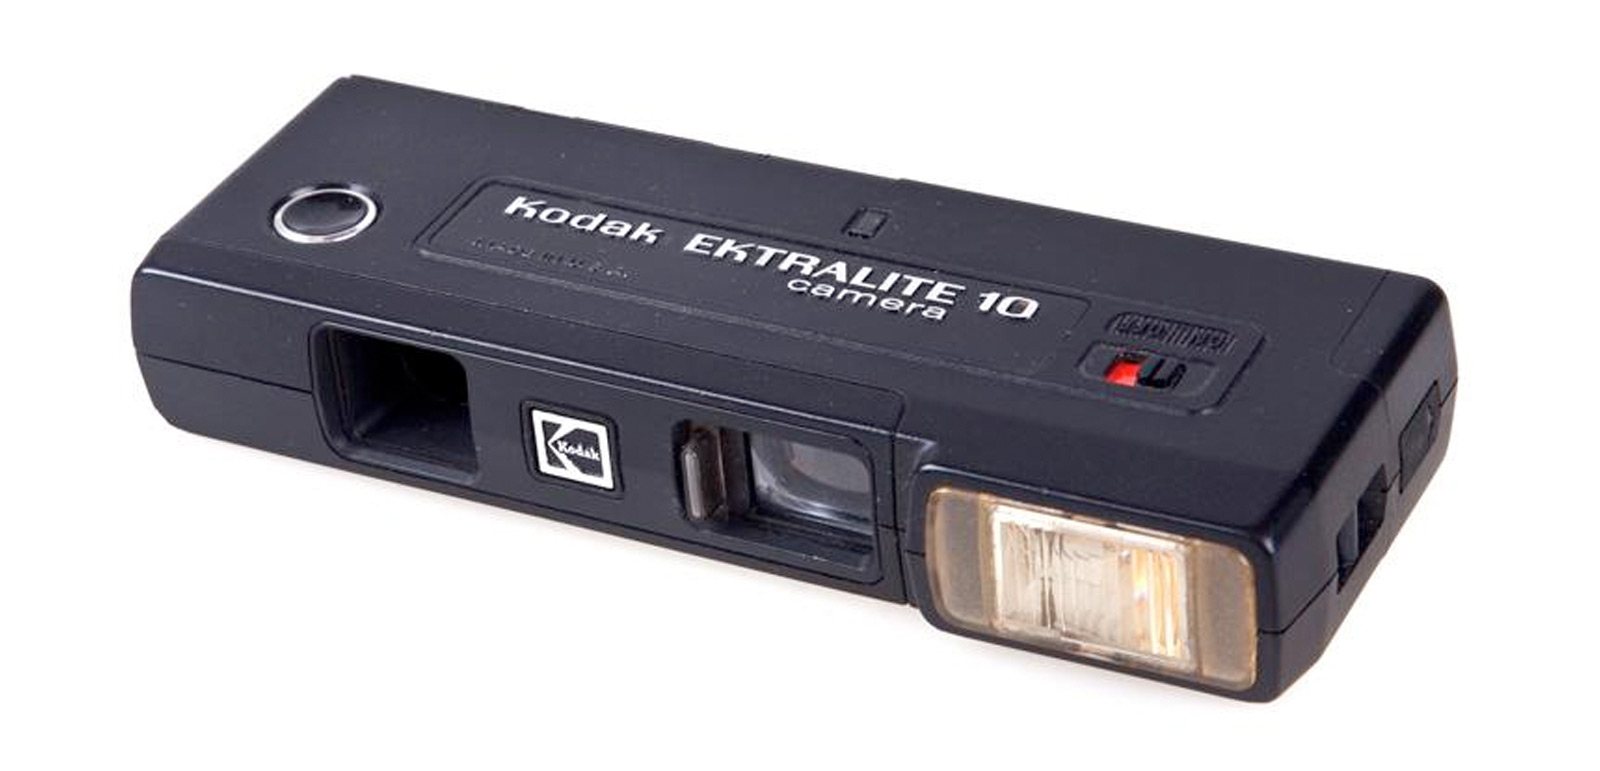 Yes, this is what a small, portable, film camera looked like back in the 1980s!